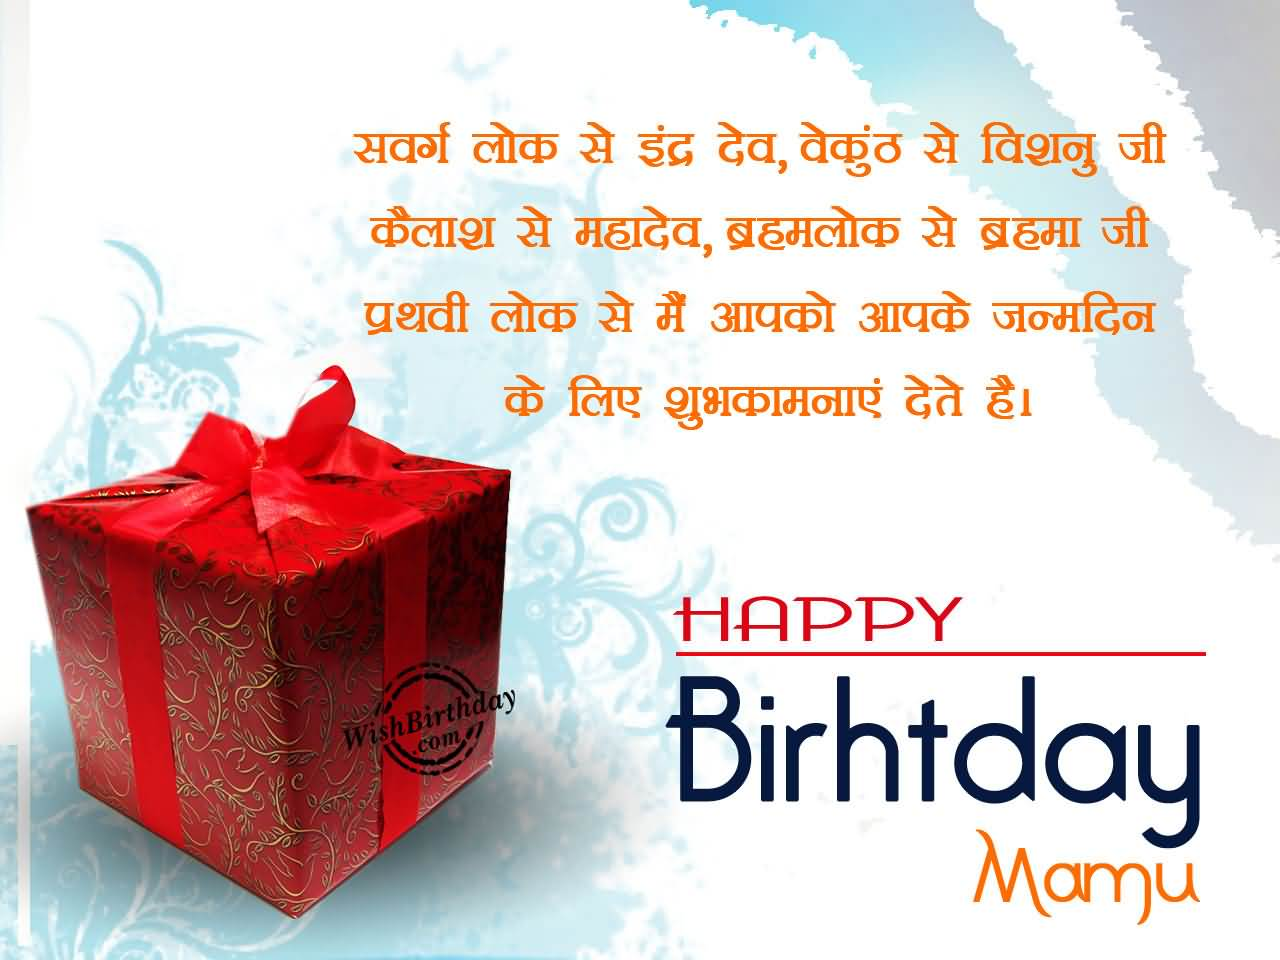 Birthday Wishes For Mama In Hindi